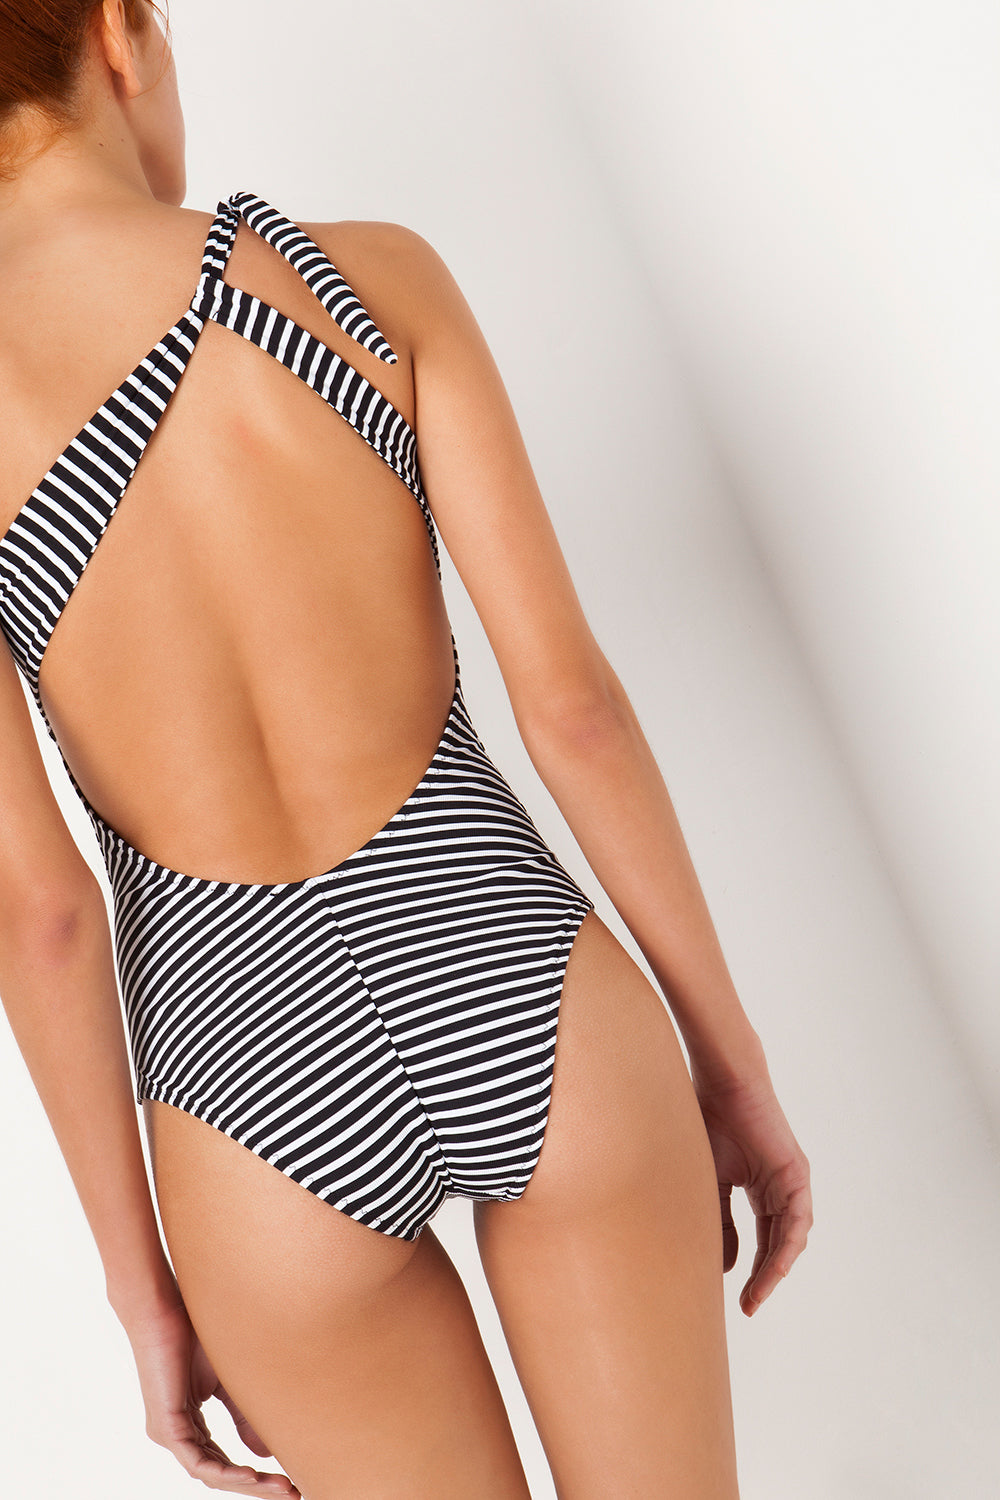 Stefania Frangista - Jennifer Black & White Stripes